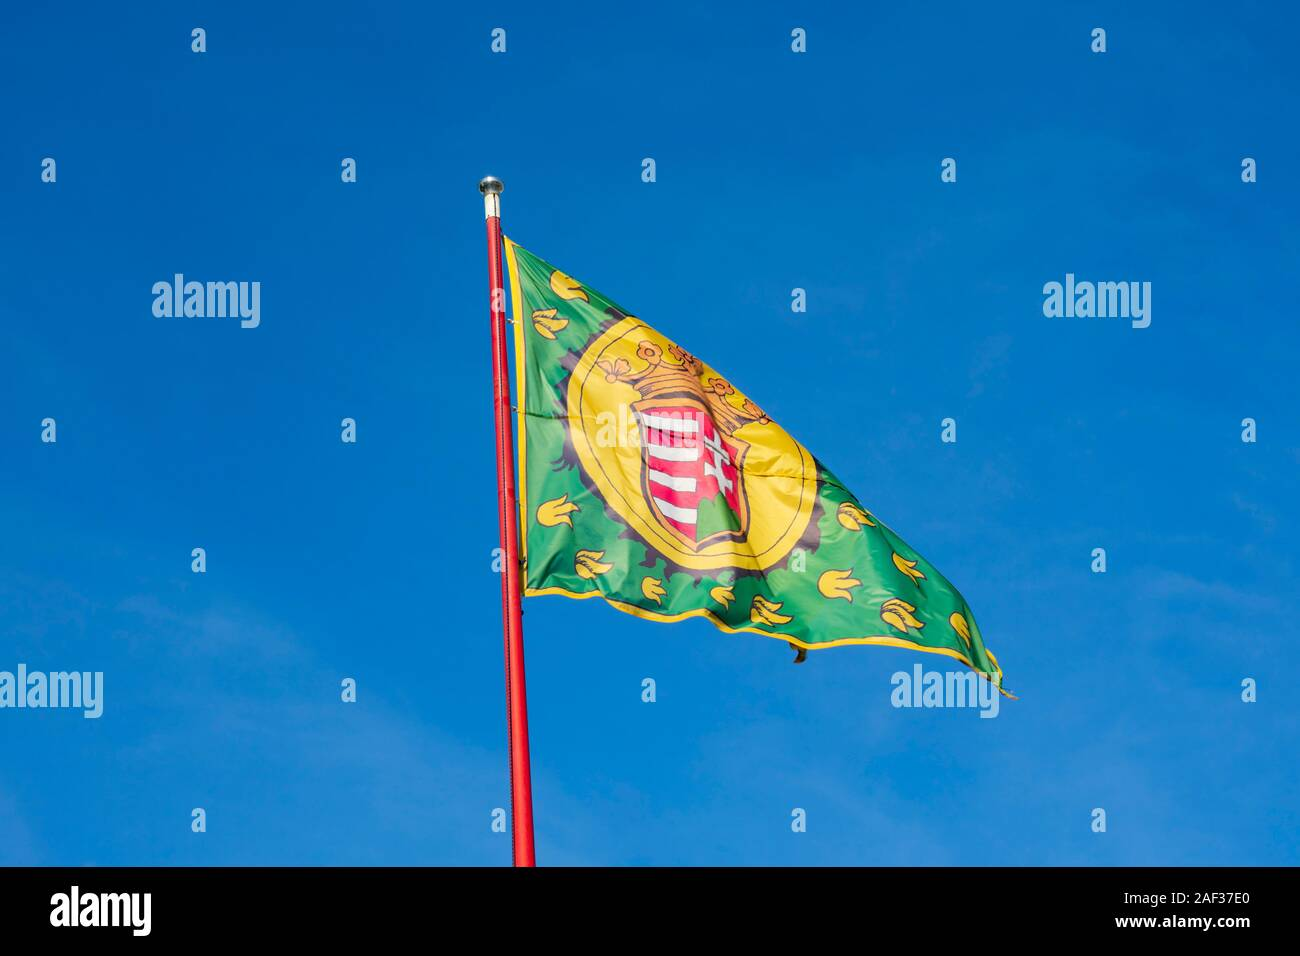 Royal flag at Buda Castle, Winter in Budapest, Hungary. December 2019 Stock Photo